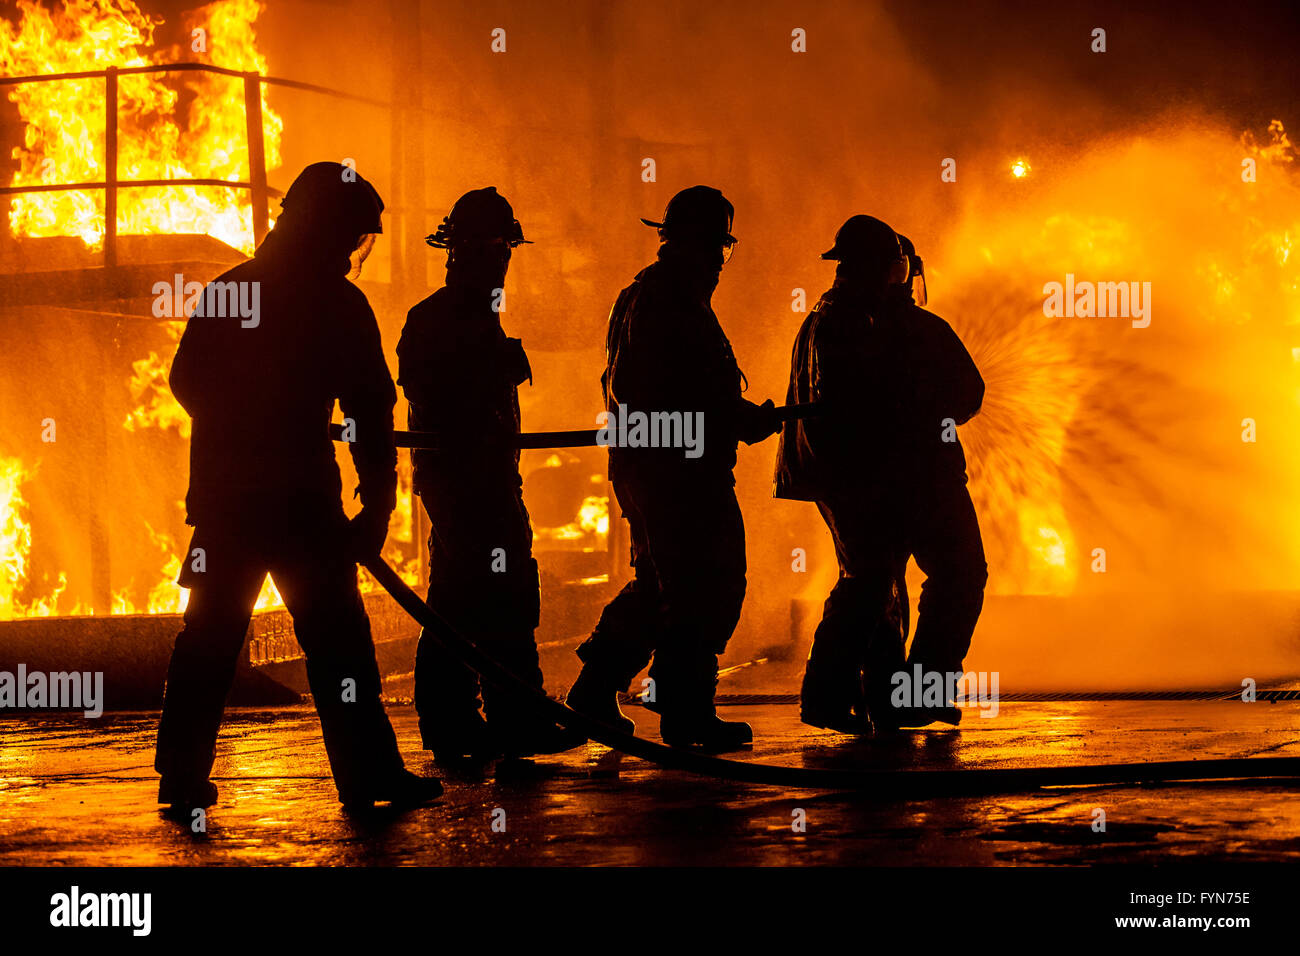 Firefighters hosing down fire - Stock Image